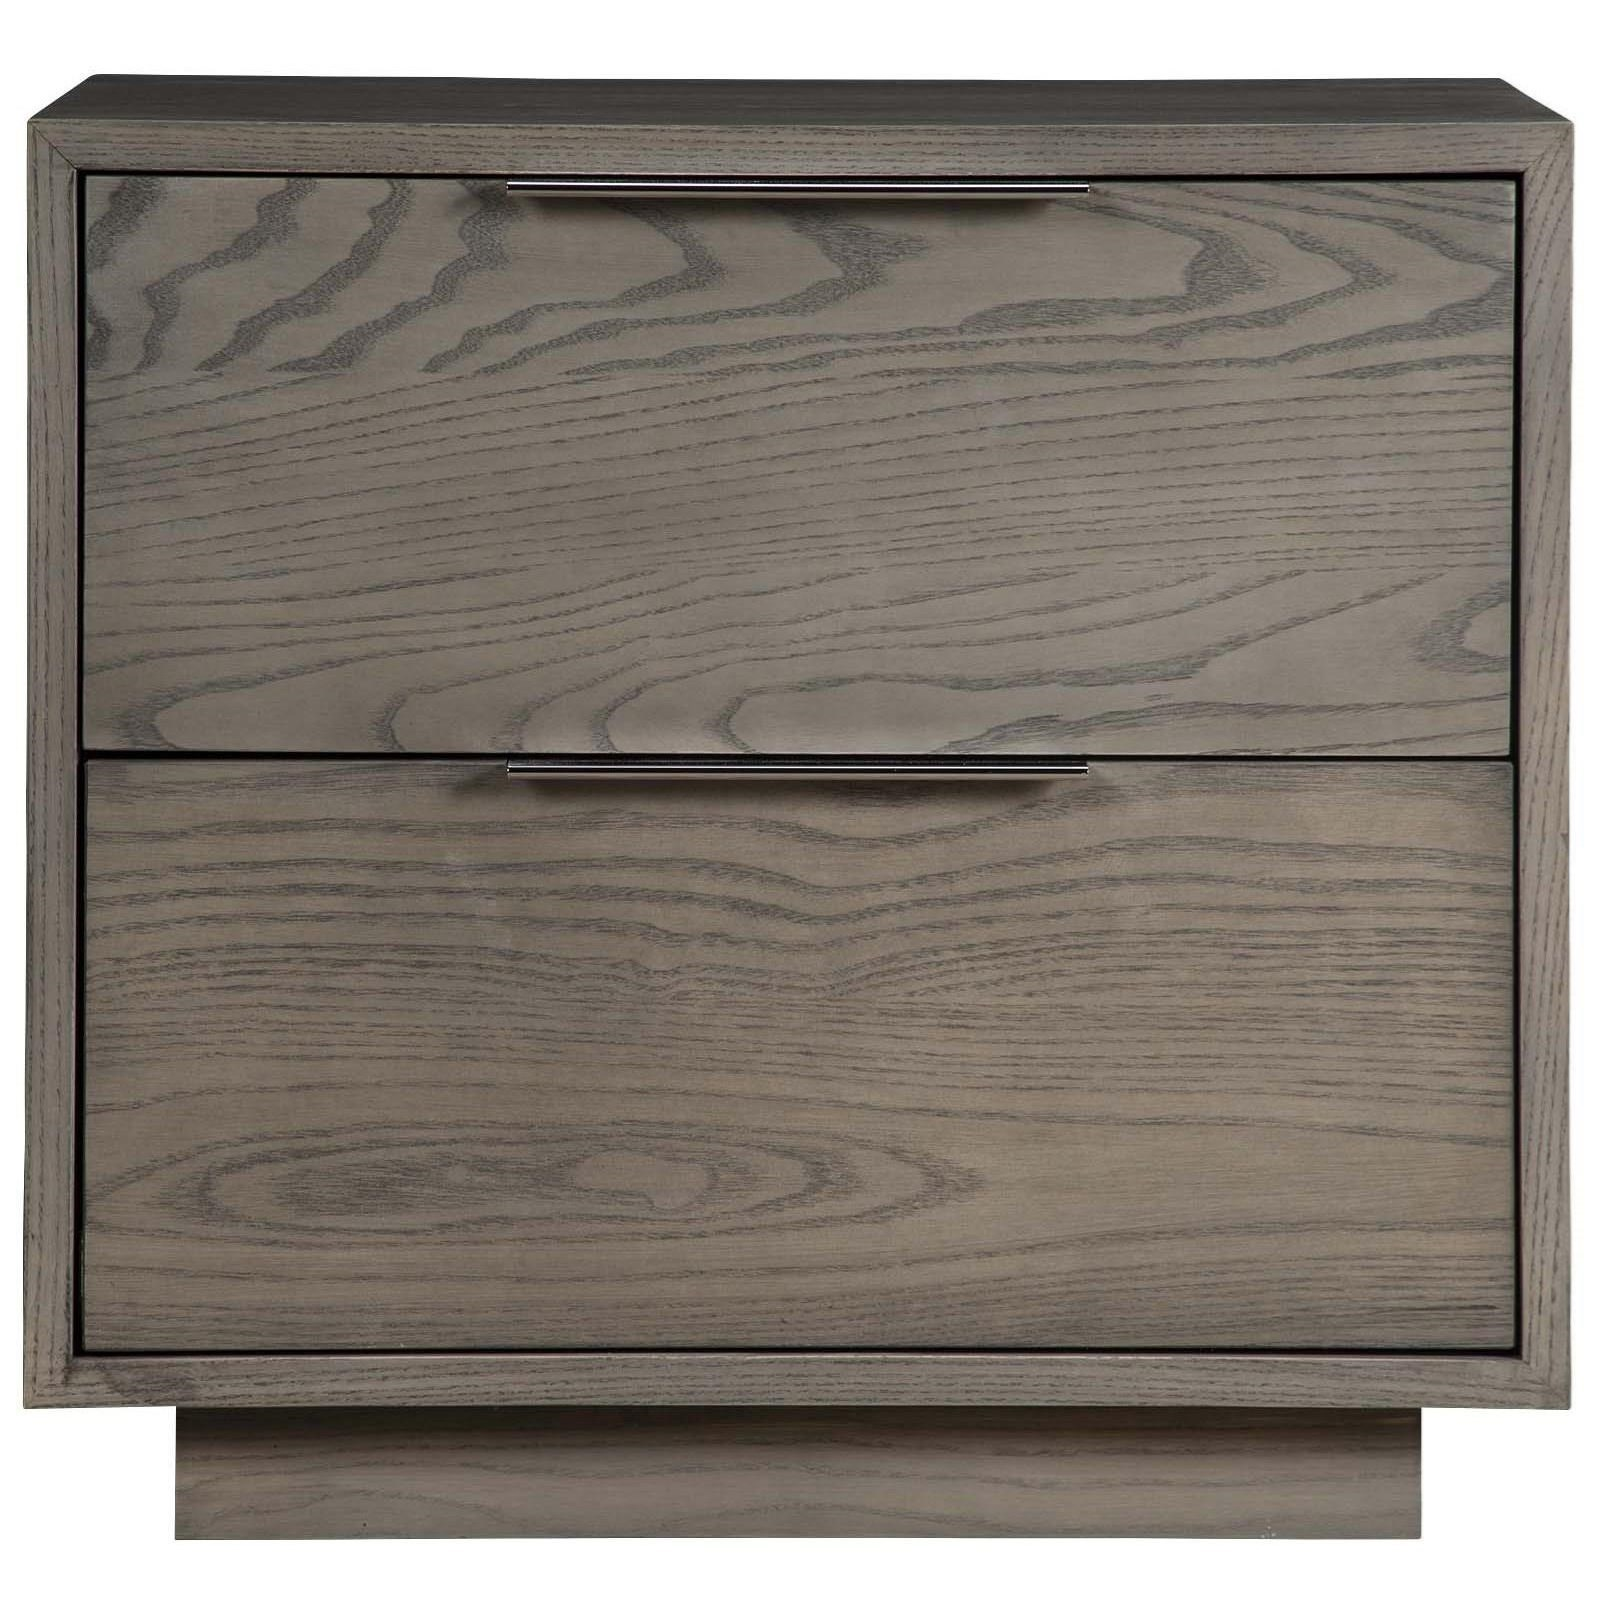 "Greenbrier Dartmoor 24"" Two Drawer Nightstand - Item Number: 82432"